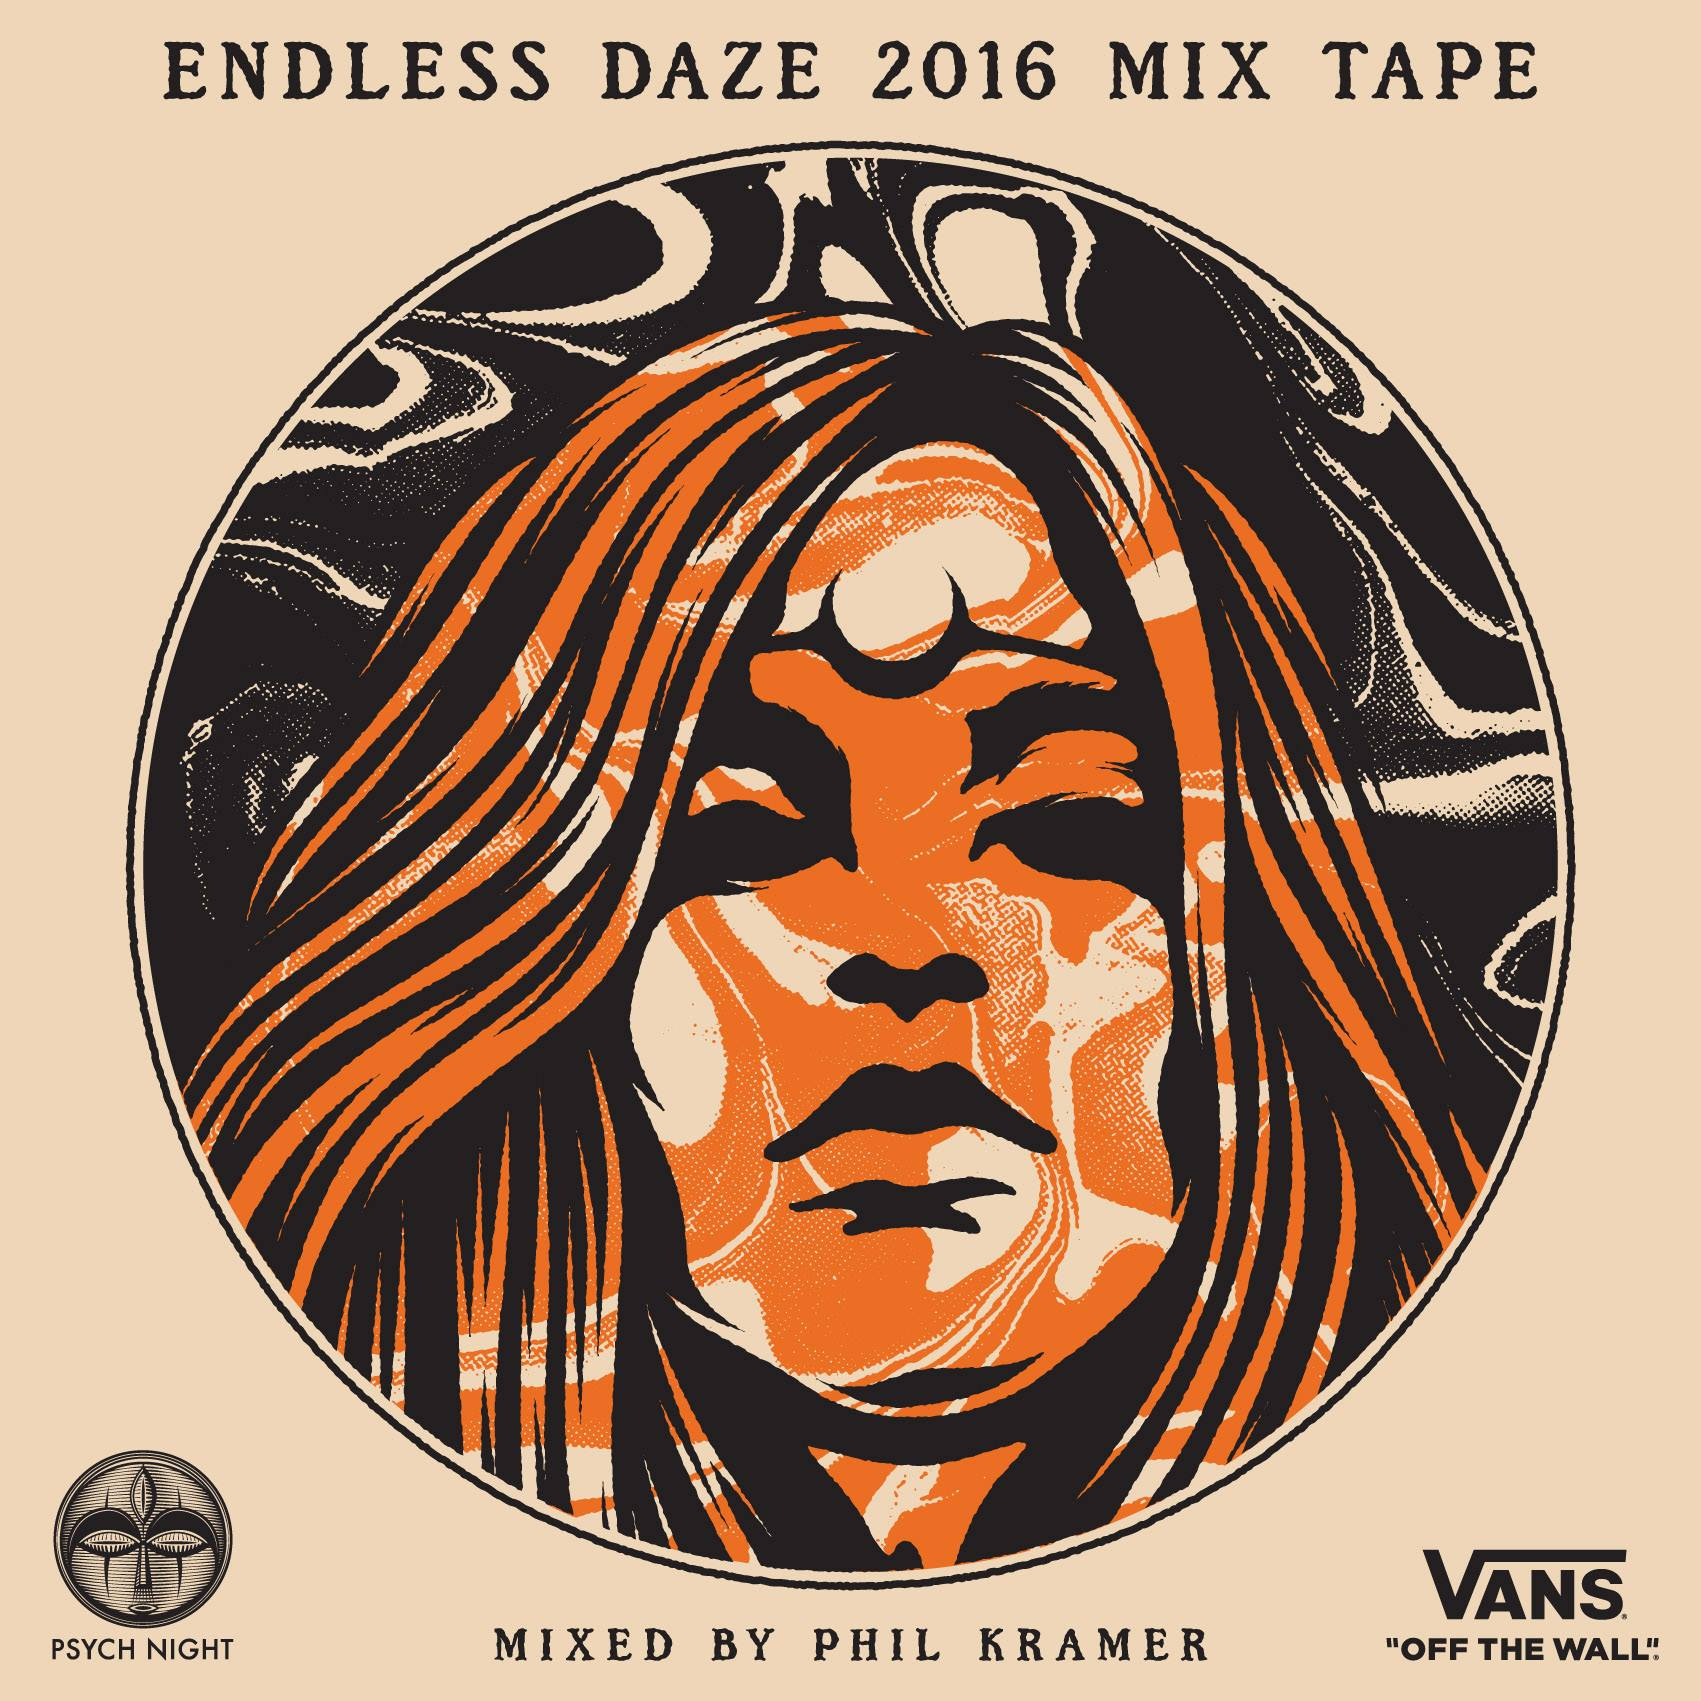 Endless Daze 2016 Mix Tape